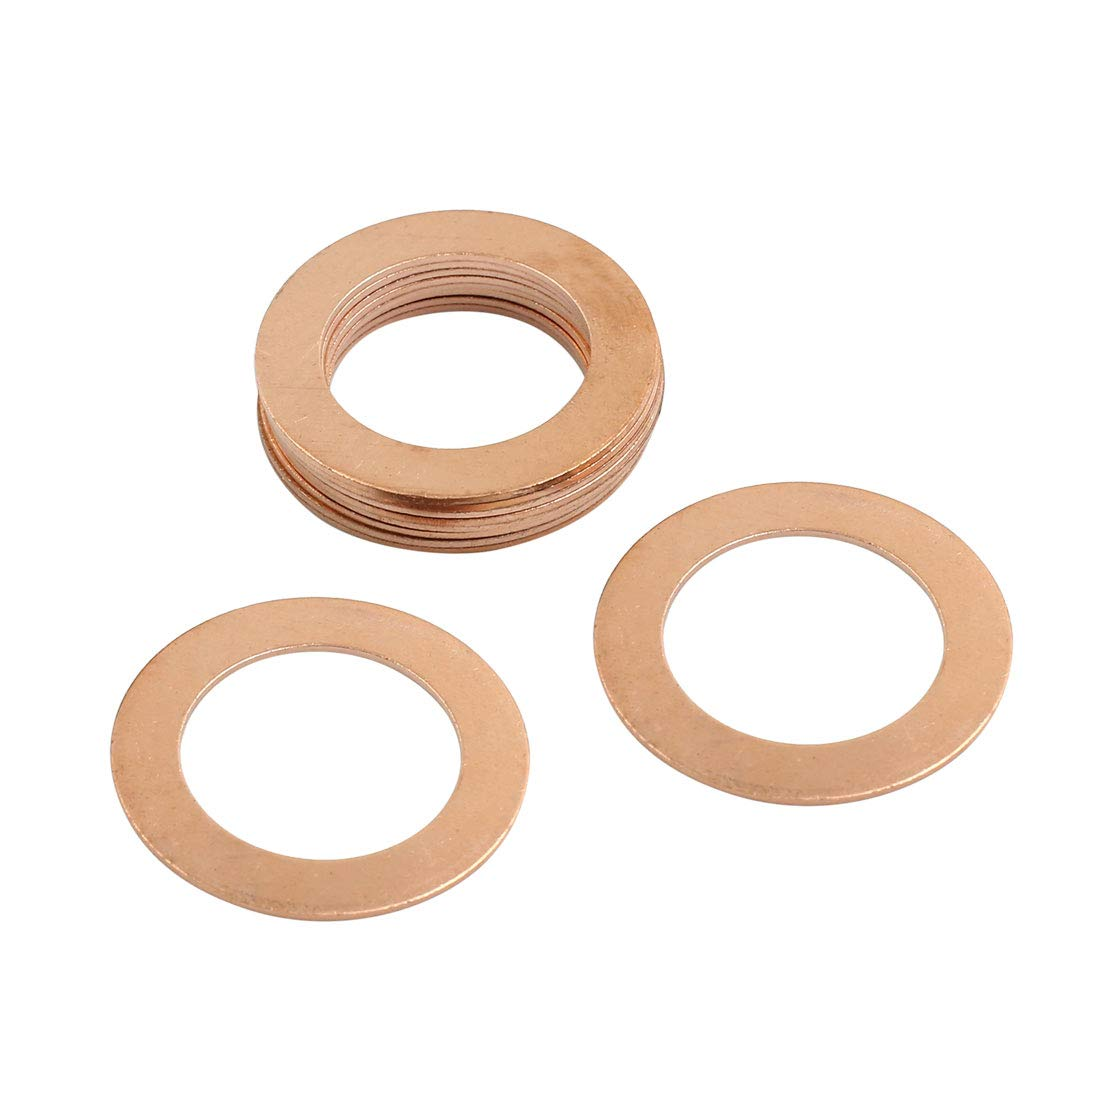 X AUTOHAUX 10pcs 26mm Inner Diameter Copper Washers Flat Sealing Gaskets Ring